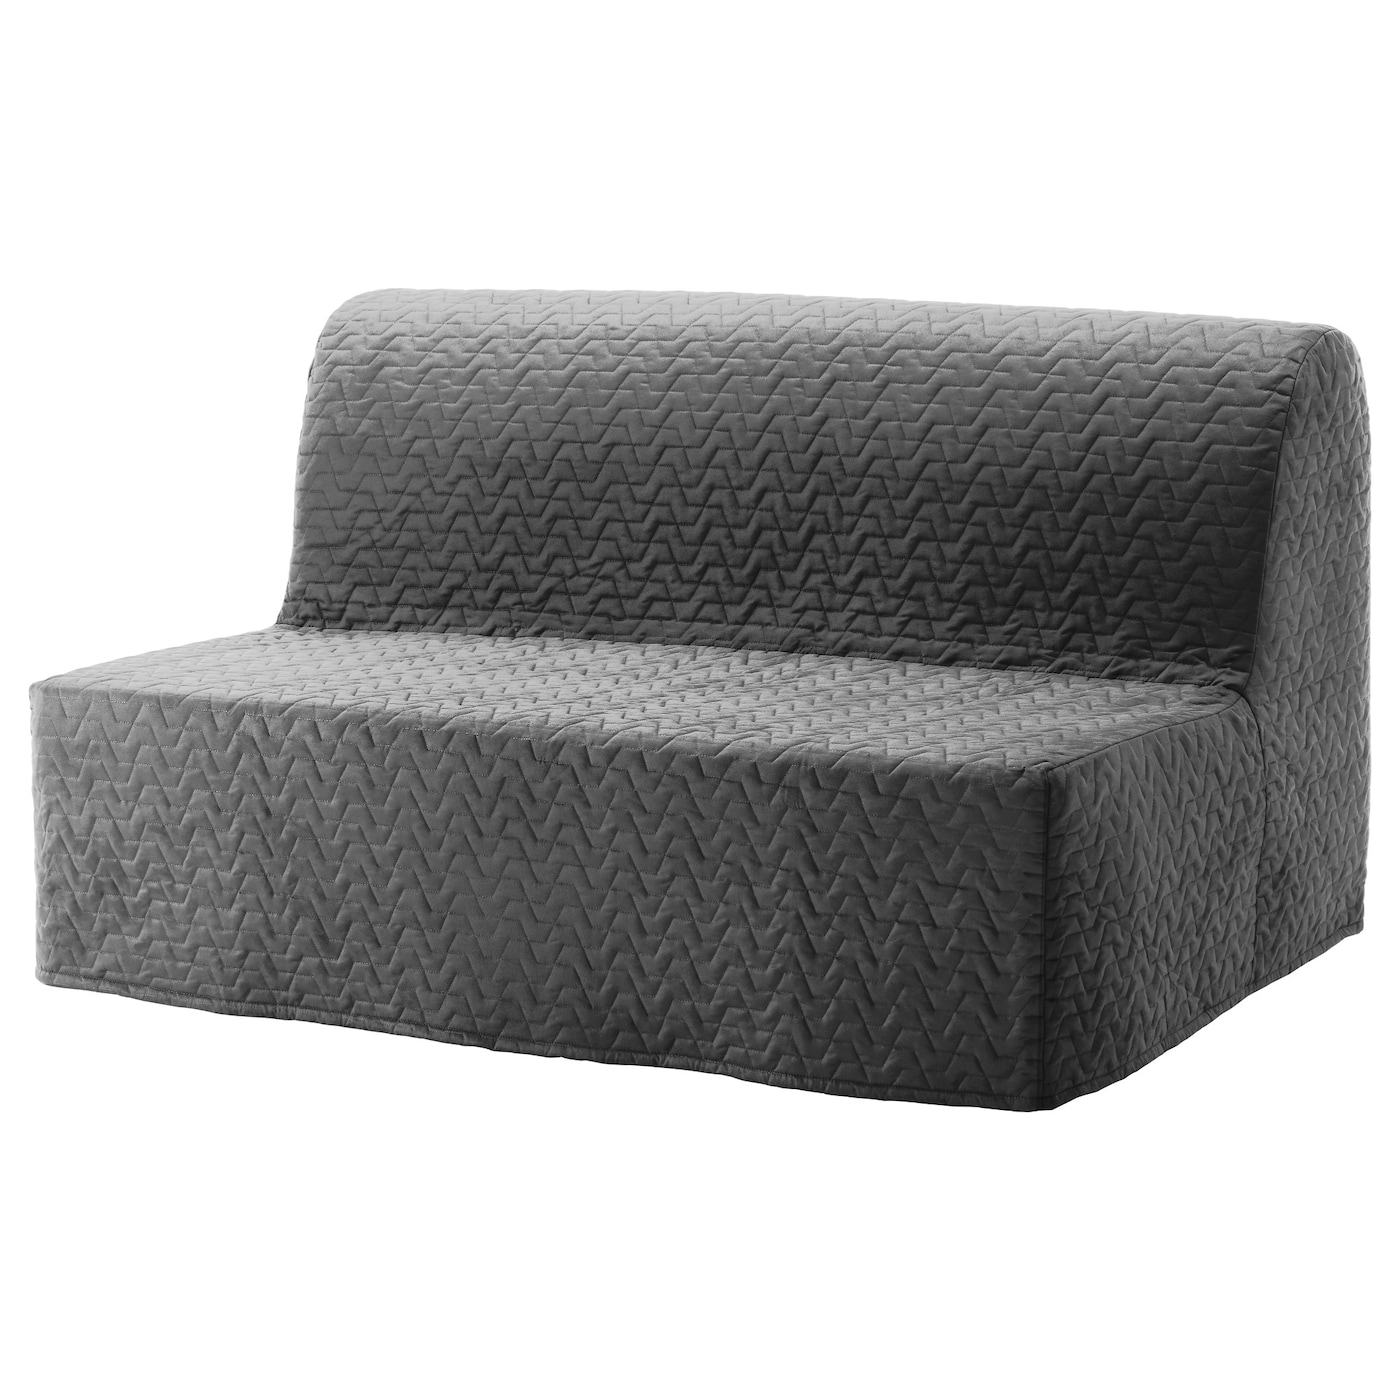 LYCKSELE HÅVET Two-seat sofa-bed - Vallarum grey